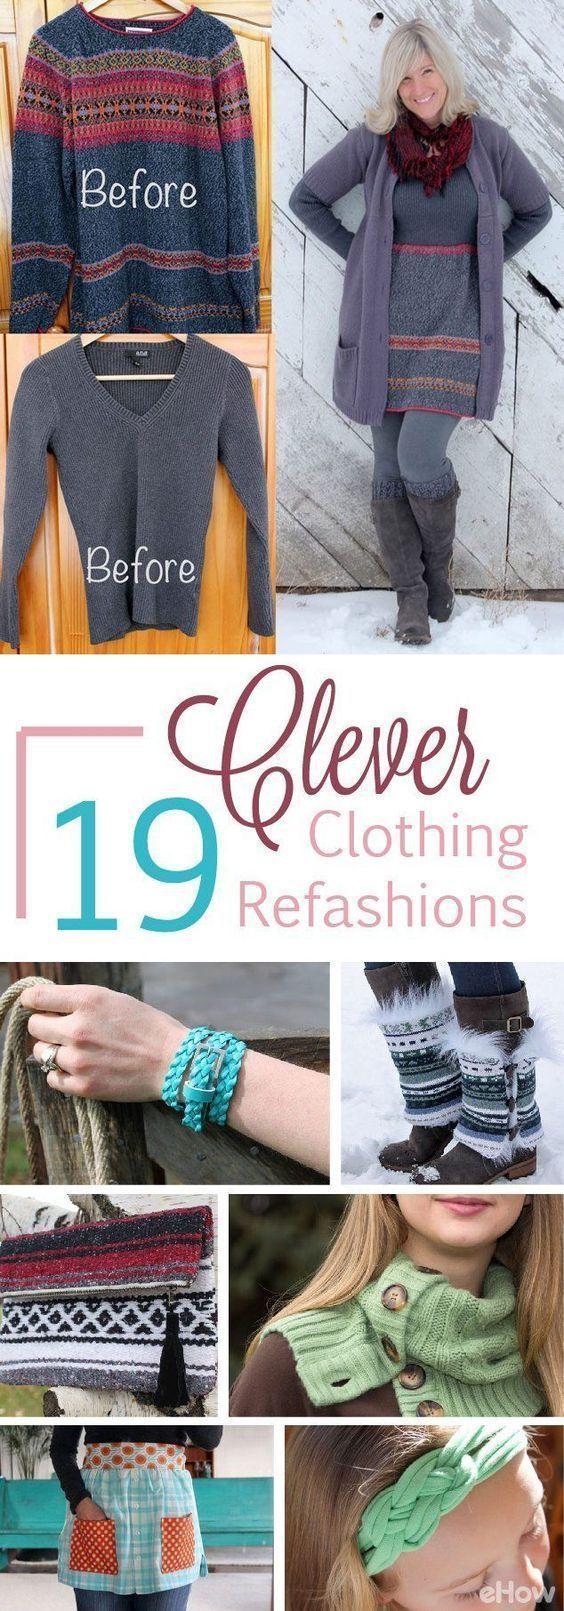 You NEED TO check out these 10 GREAT Money Saving Clothing Tips and Hacks! They're all such great ideas and I've tried a few and have AMAZING results! I'm SO GLAD I found this! Definitely pinning for later!